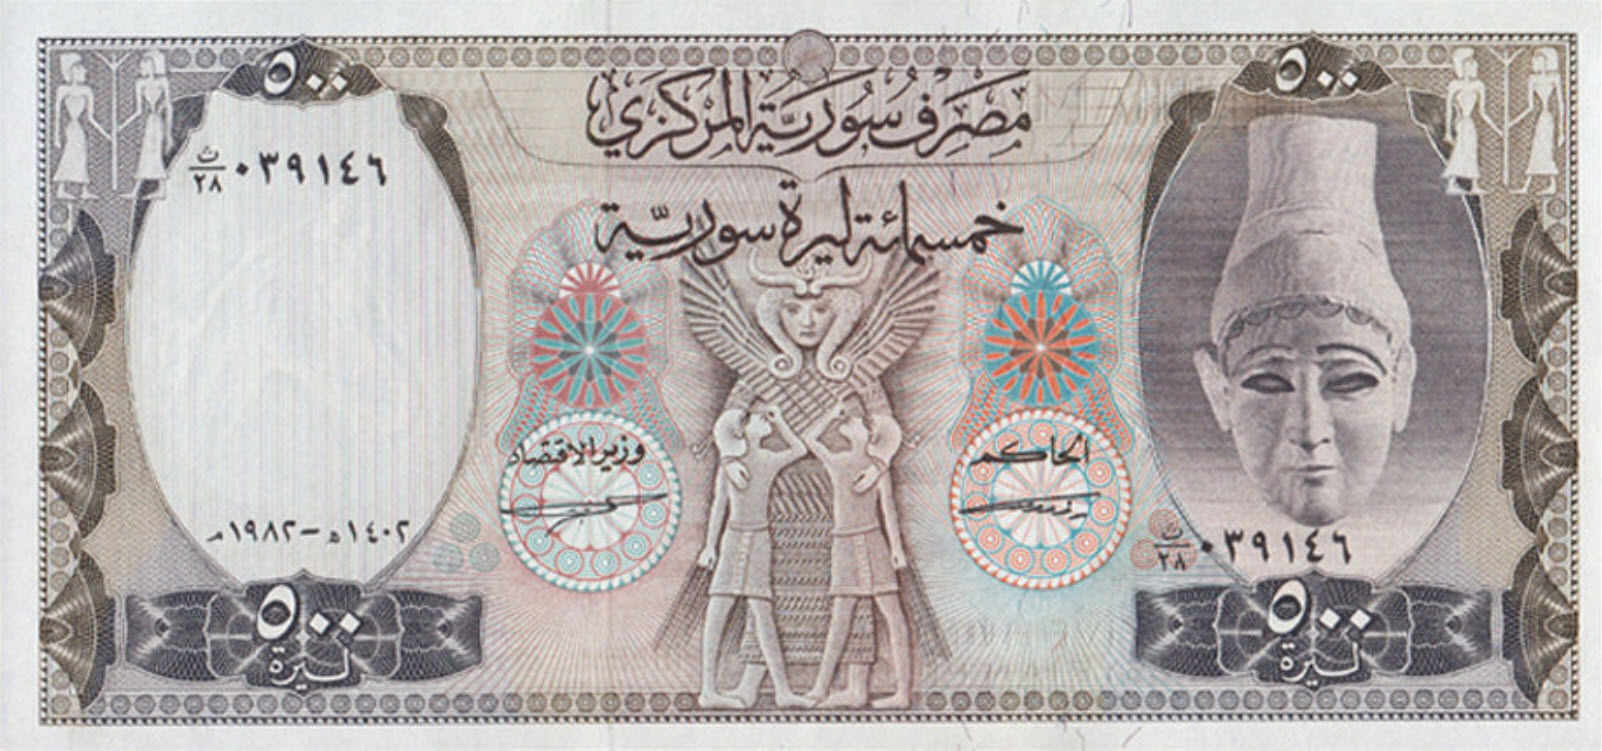 (438) Syria P105c - 500 Pounds Year 1990